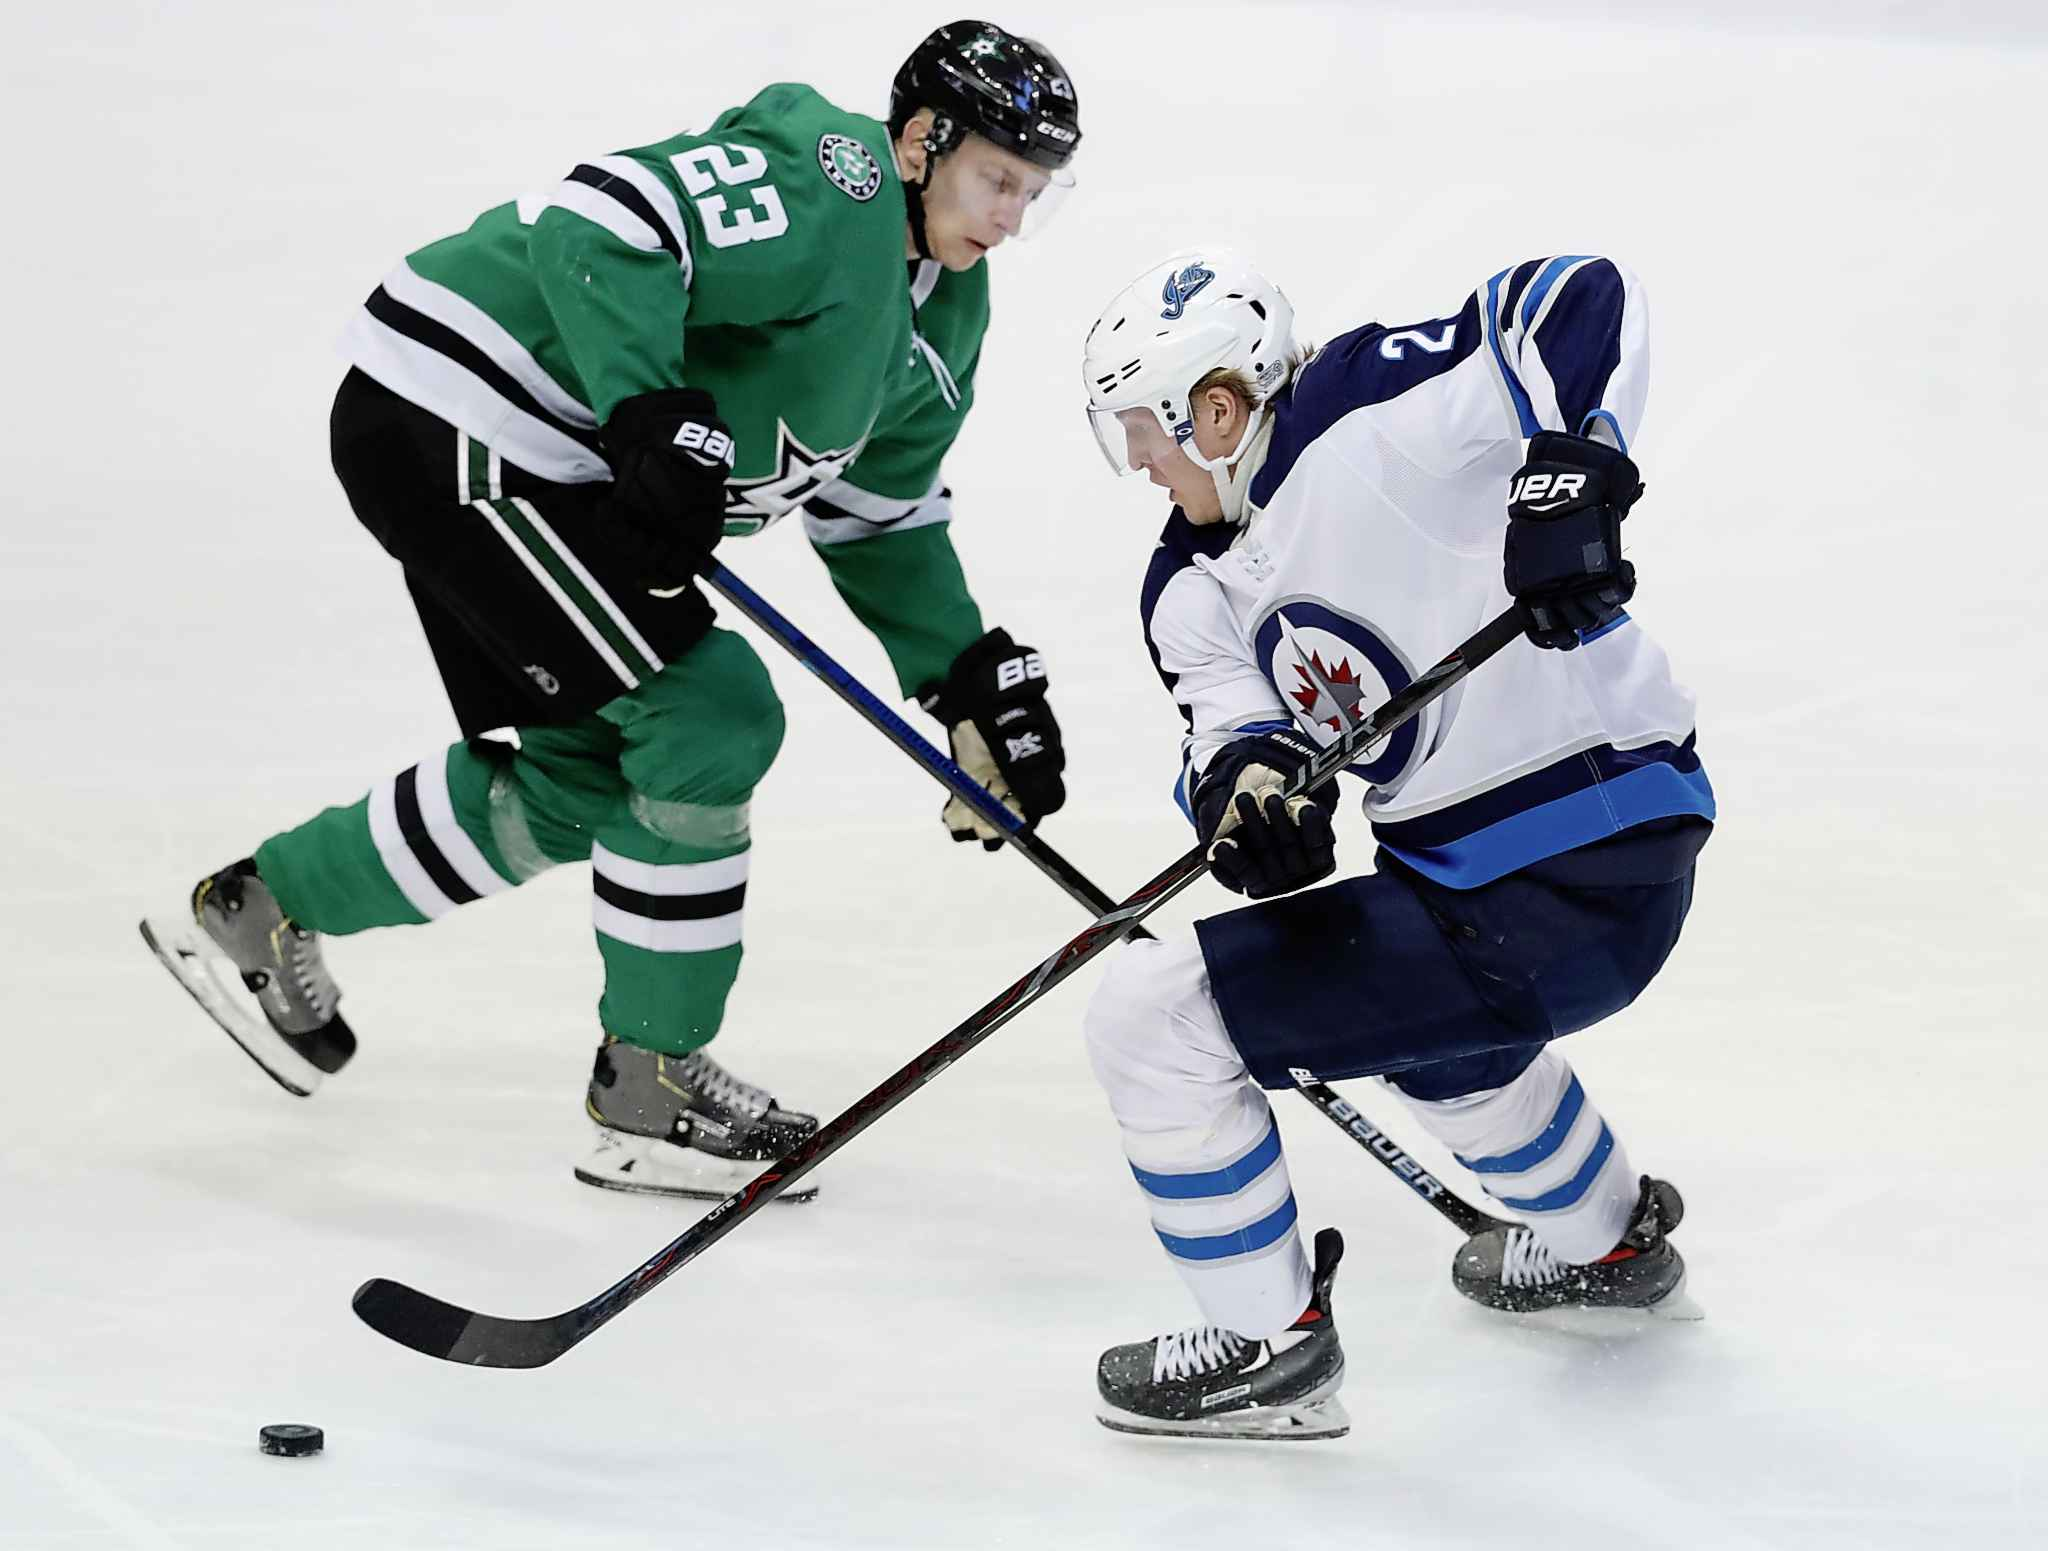 LM OTERO / THE ASSOCIATED PRESS</p><p>Winnipeg Jets right wing Patrik Laine (29) skates for the puck against Dallas Stars defenseman Esa Lindell (23) during the second period of an NHL hockey game in Dallas, Saturday, Jan. 19, 2019.</p>